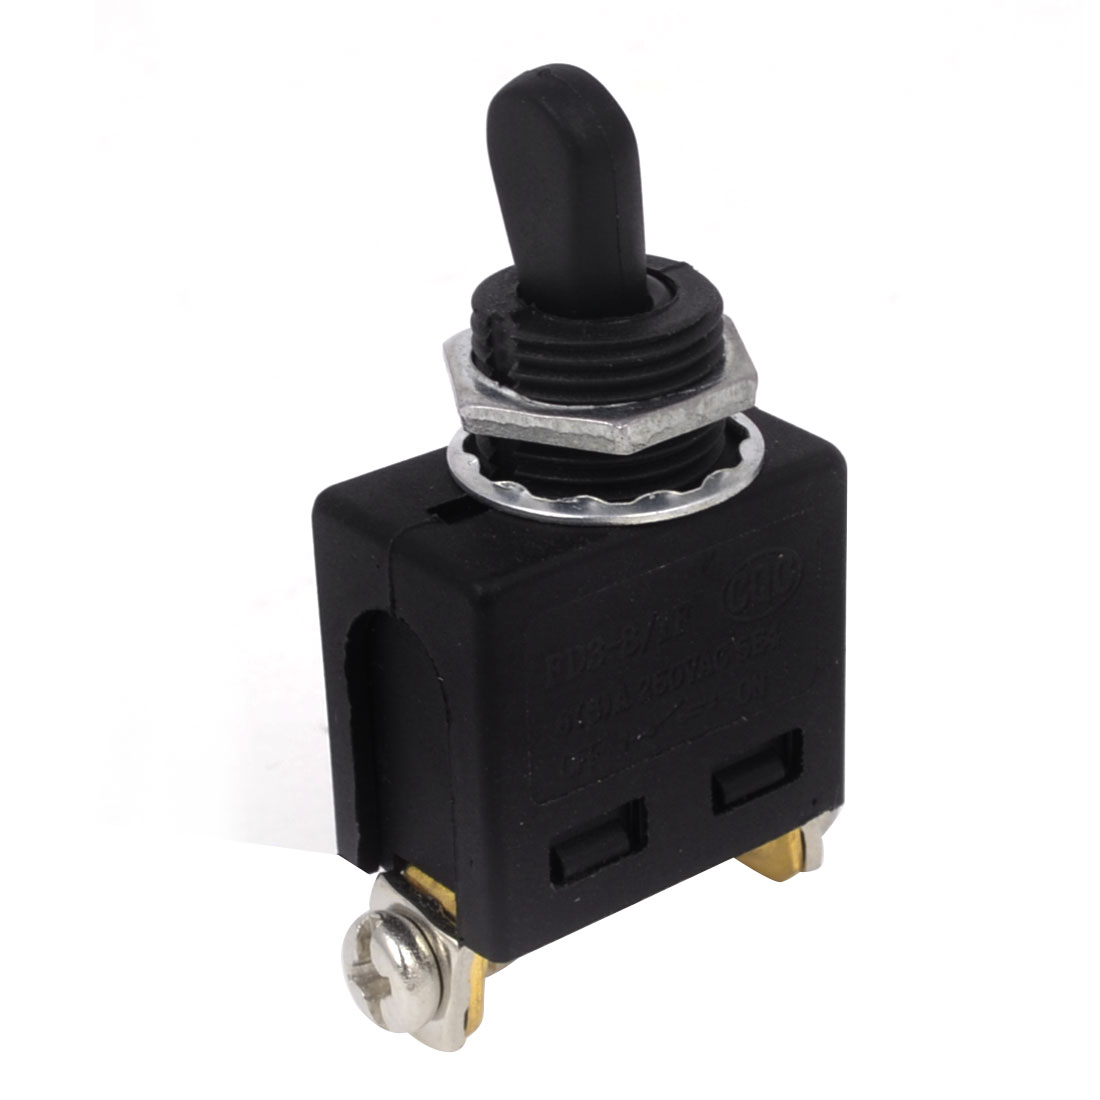 AC 250V 6/8A SPST ON/OFF 2 Screw Terminals Latching Toggle Switch